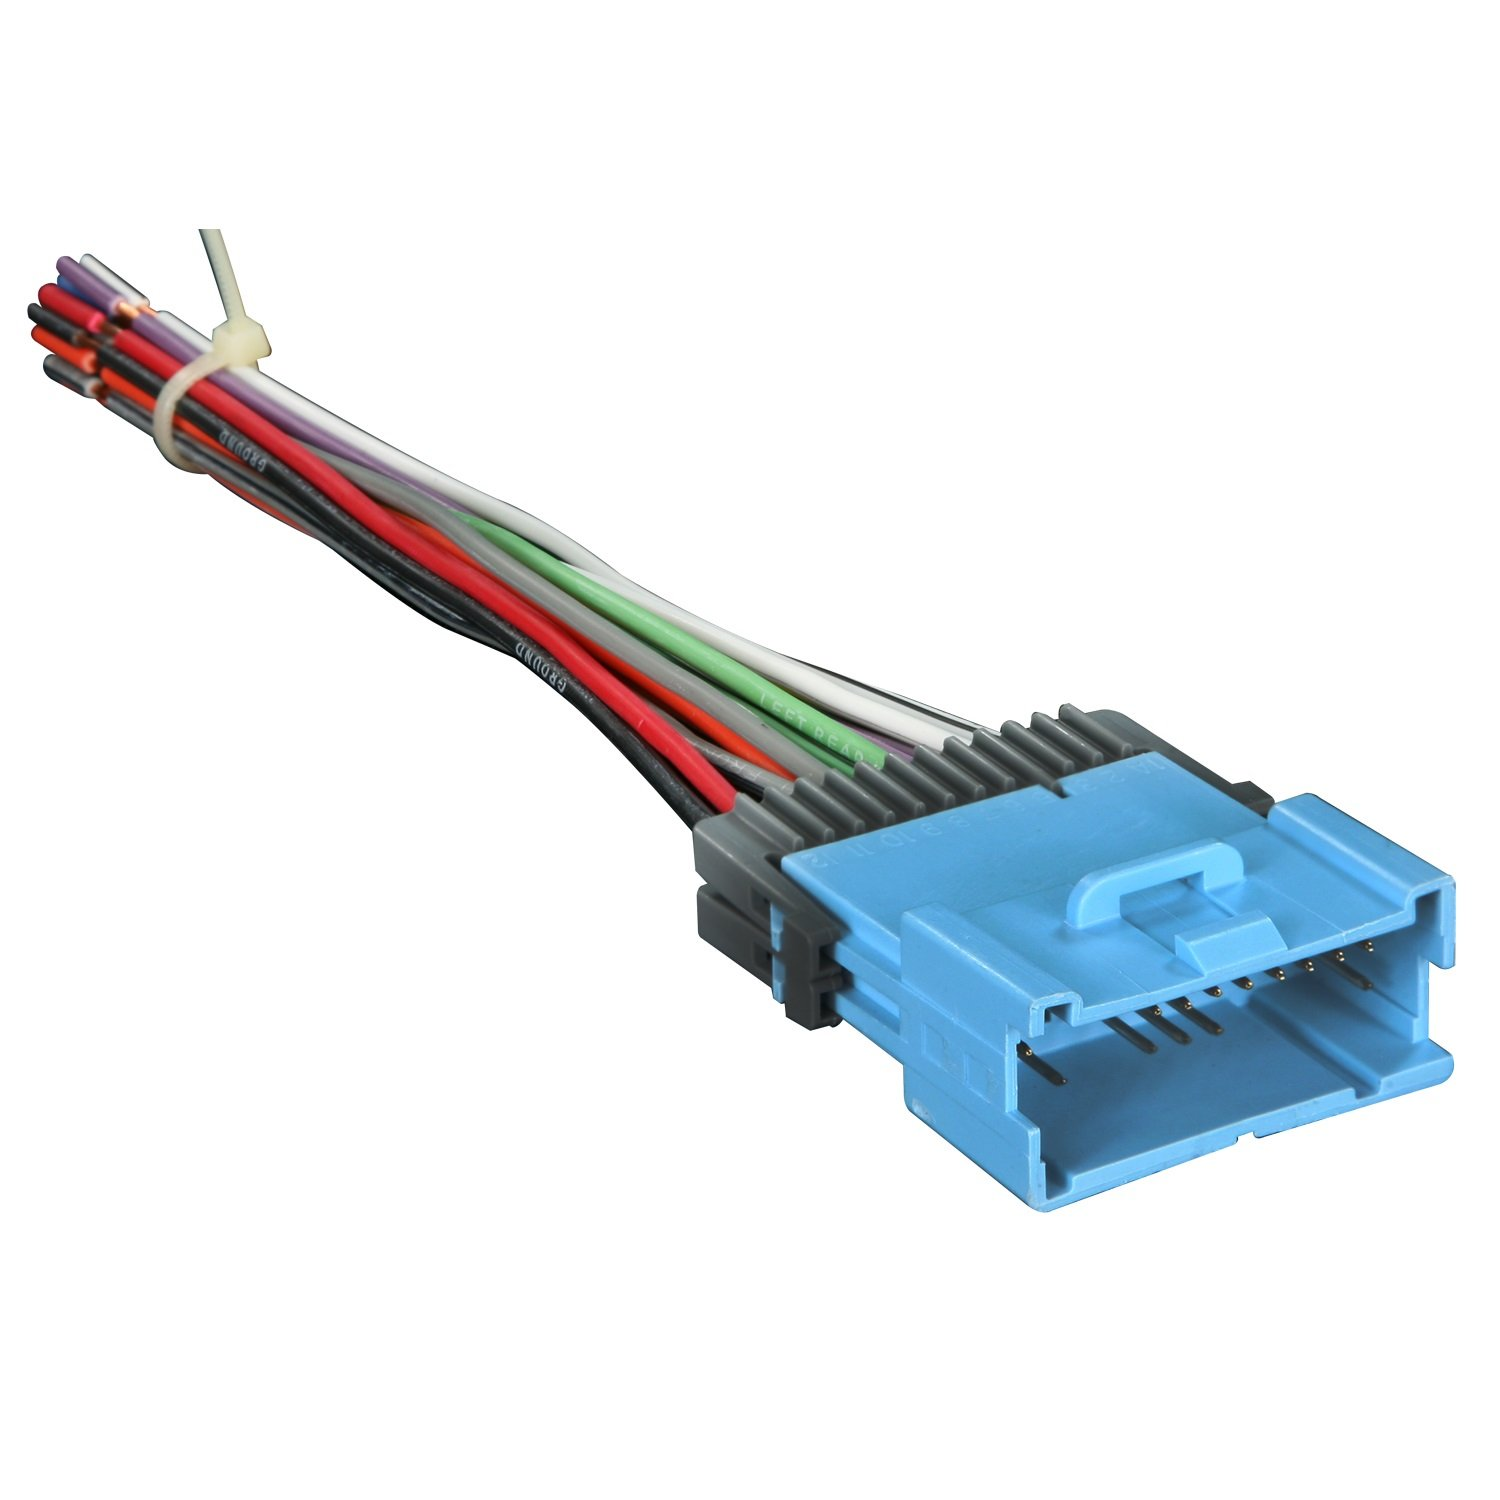 61ruWw 2aJL._SL1500_ amazon com metra 70 2102 radio wiring harness for gm 04 05 car  at highcare.asia